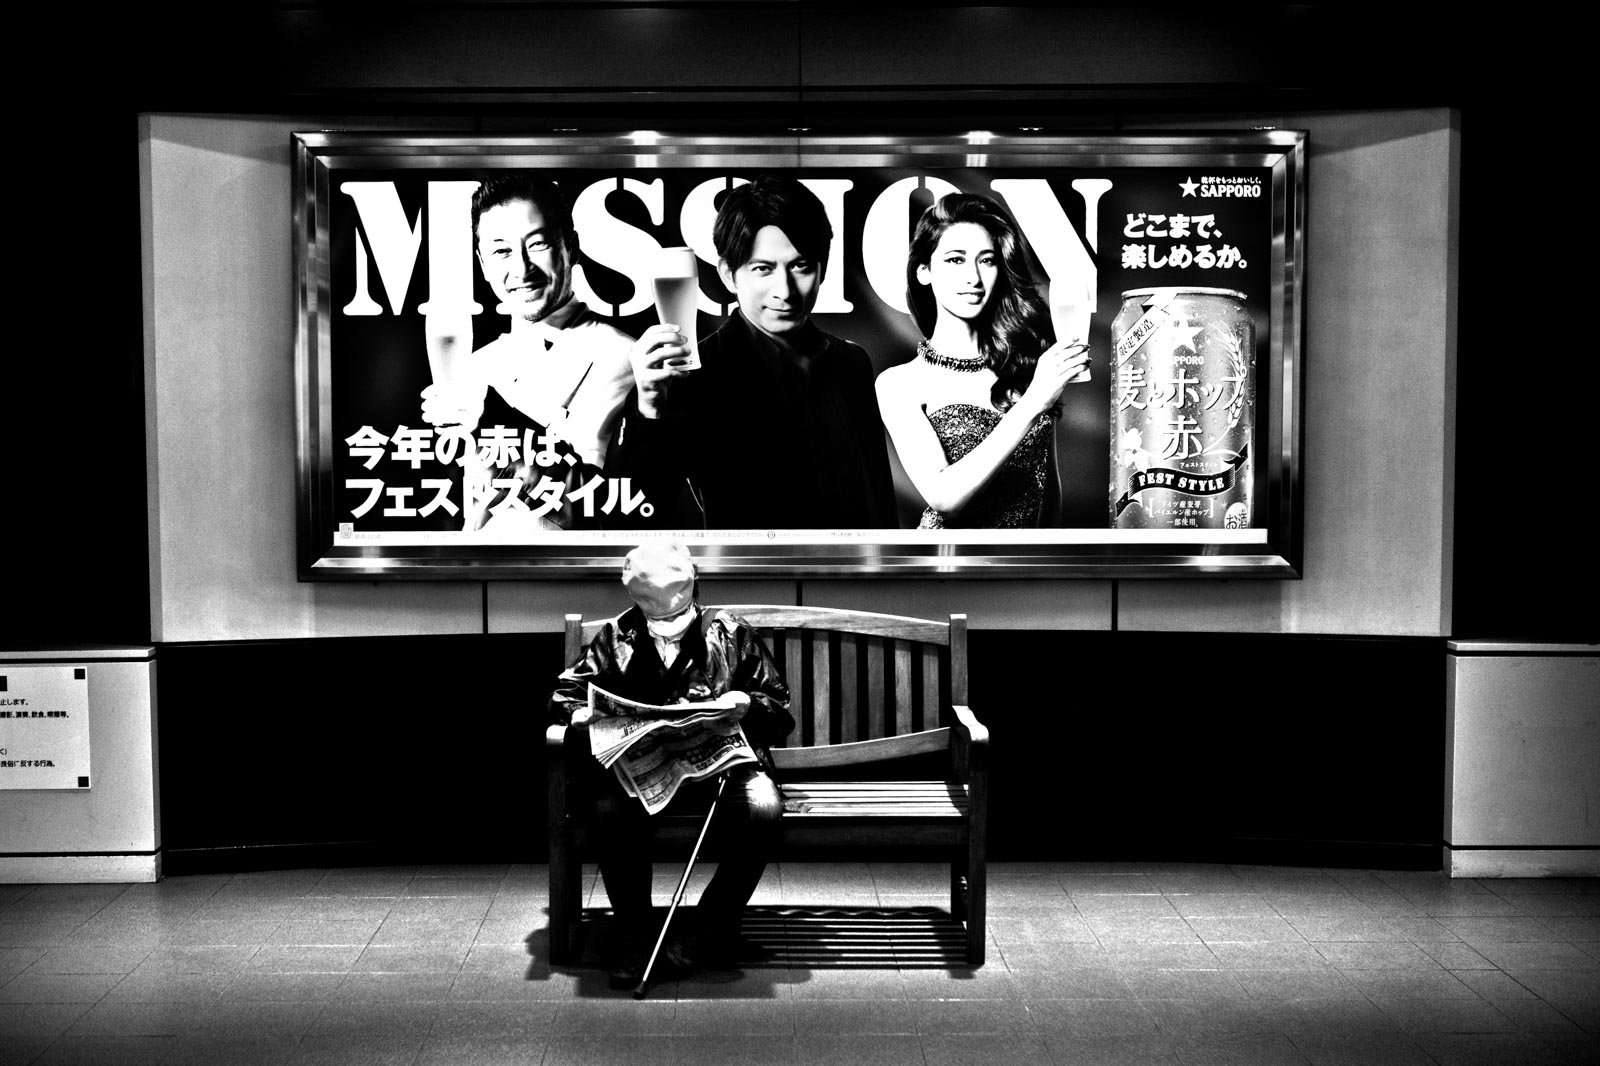 Old Japanese man sitting and reading a newspaper under a flashy billboard. Street photography by Victor Borst